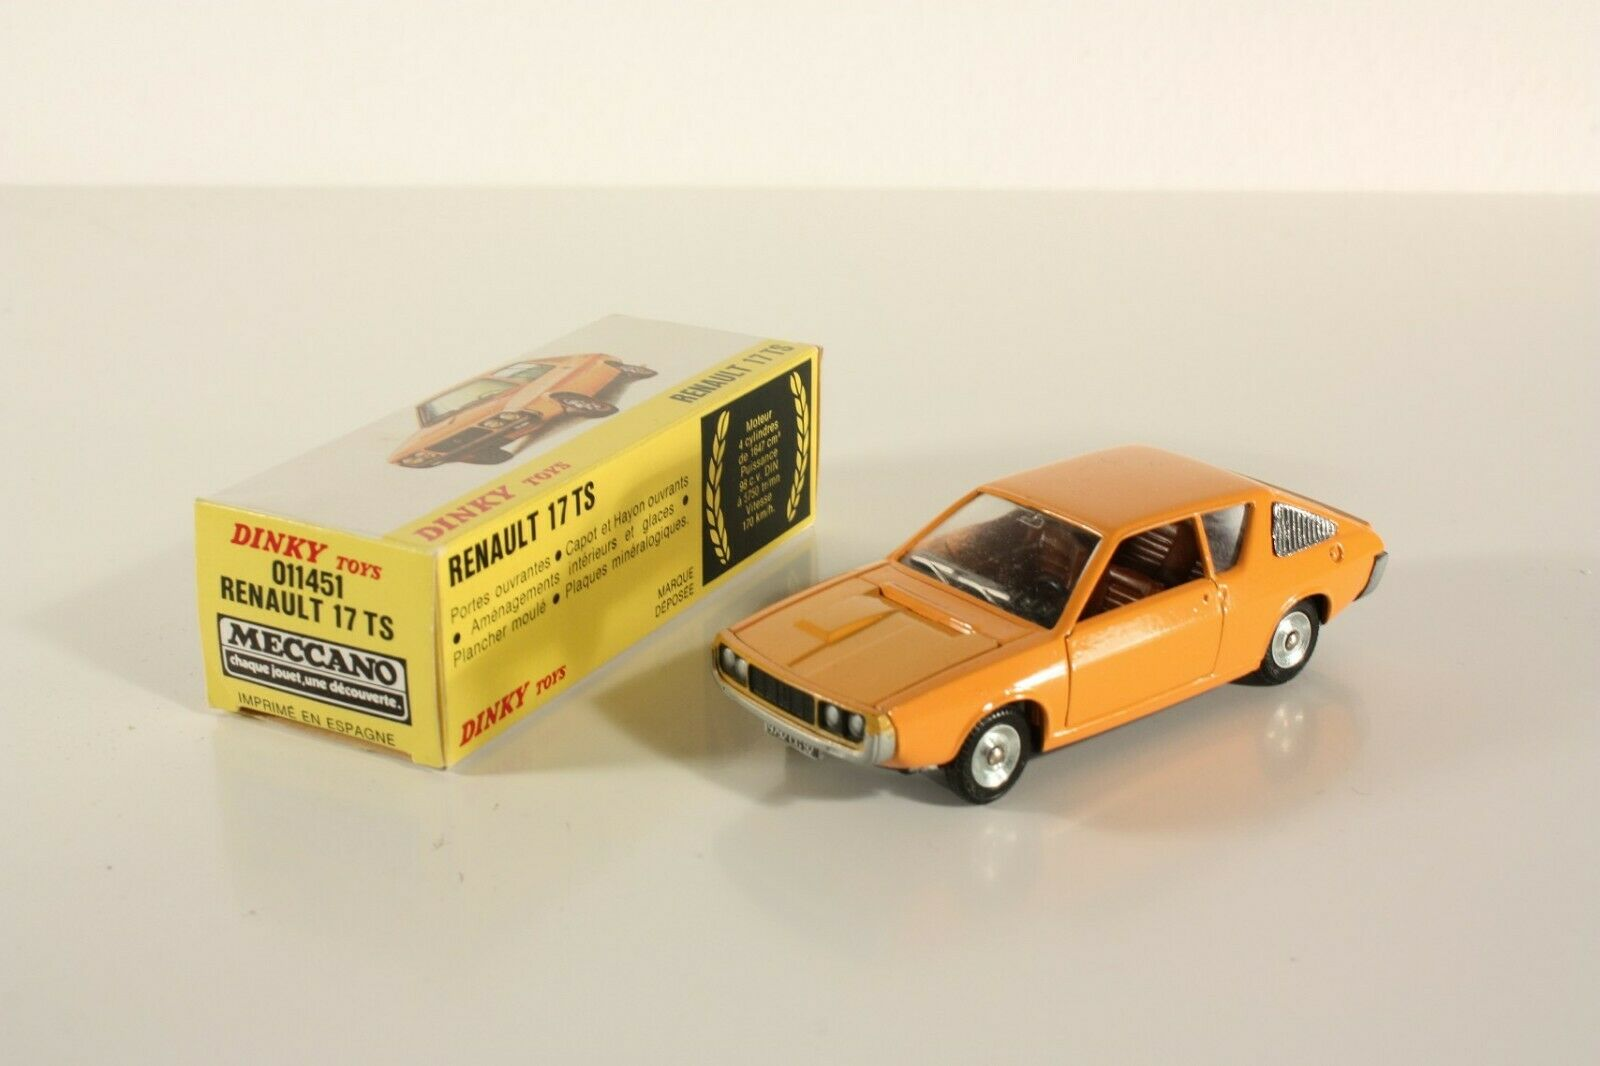 DINKY TOYS 011451, RENAULT 17 TS, Comme neuf Dans Box  ab2266